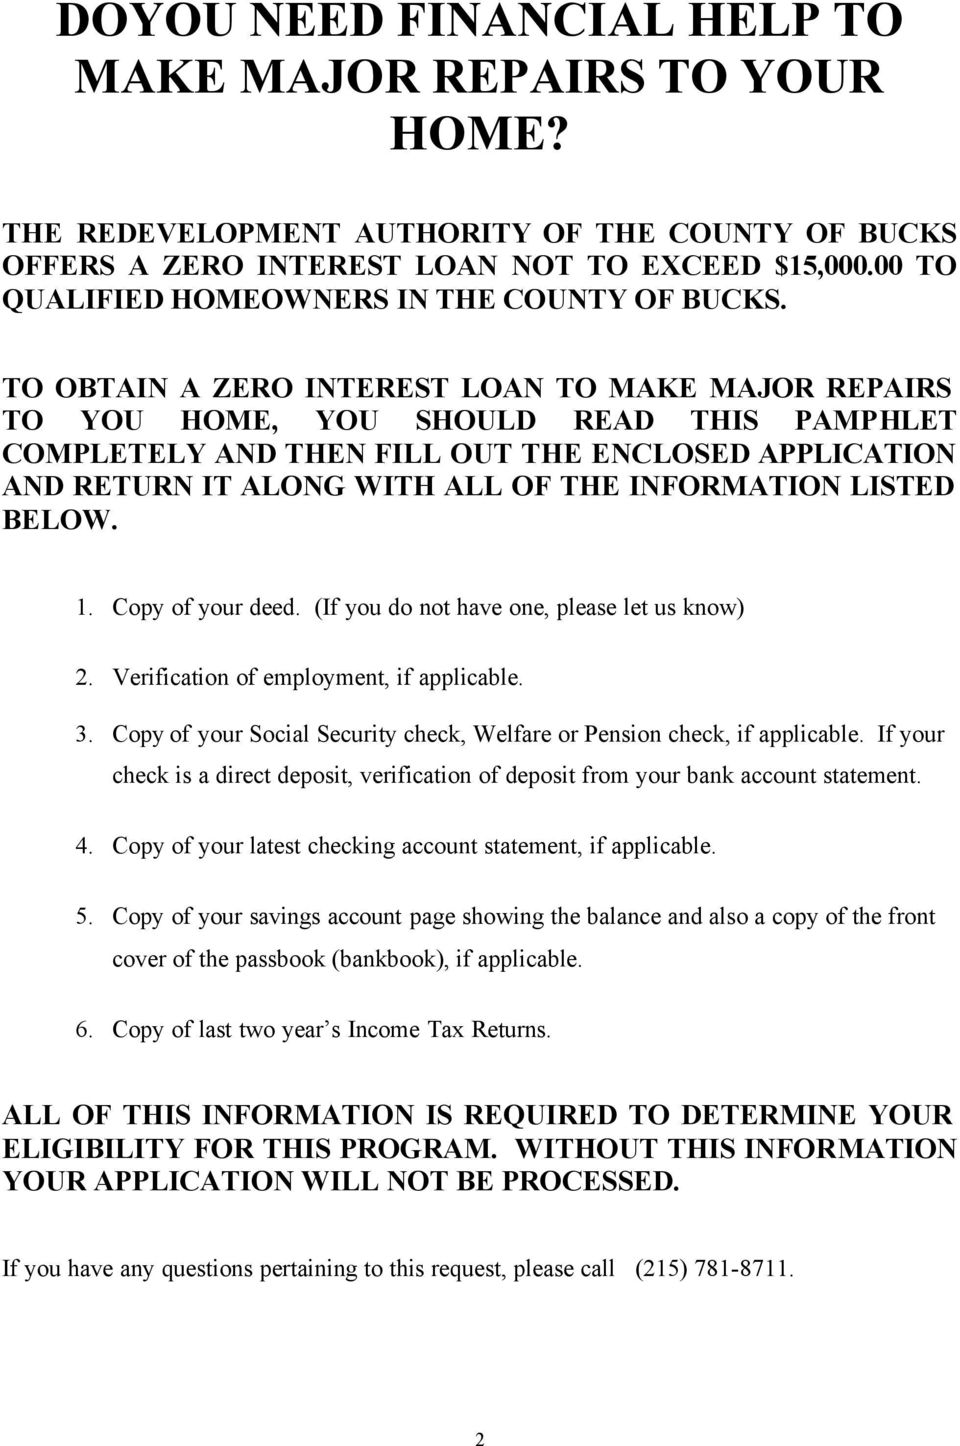 TO OBTAIN A ZERO INTEREST LOAN TO MAKE MAJOR REPAIRS TO YOU HOME, YOU SHOULD READ THIS PAMPHLET COMPLETELY AND THEN FILL OUT THE ENCLOSED APPLICATION AND RETURN IT ALONG WITH ALL OF THE INFORMATION